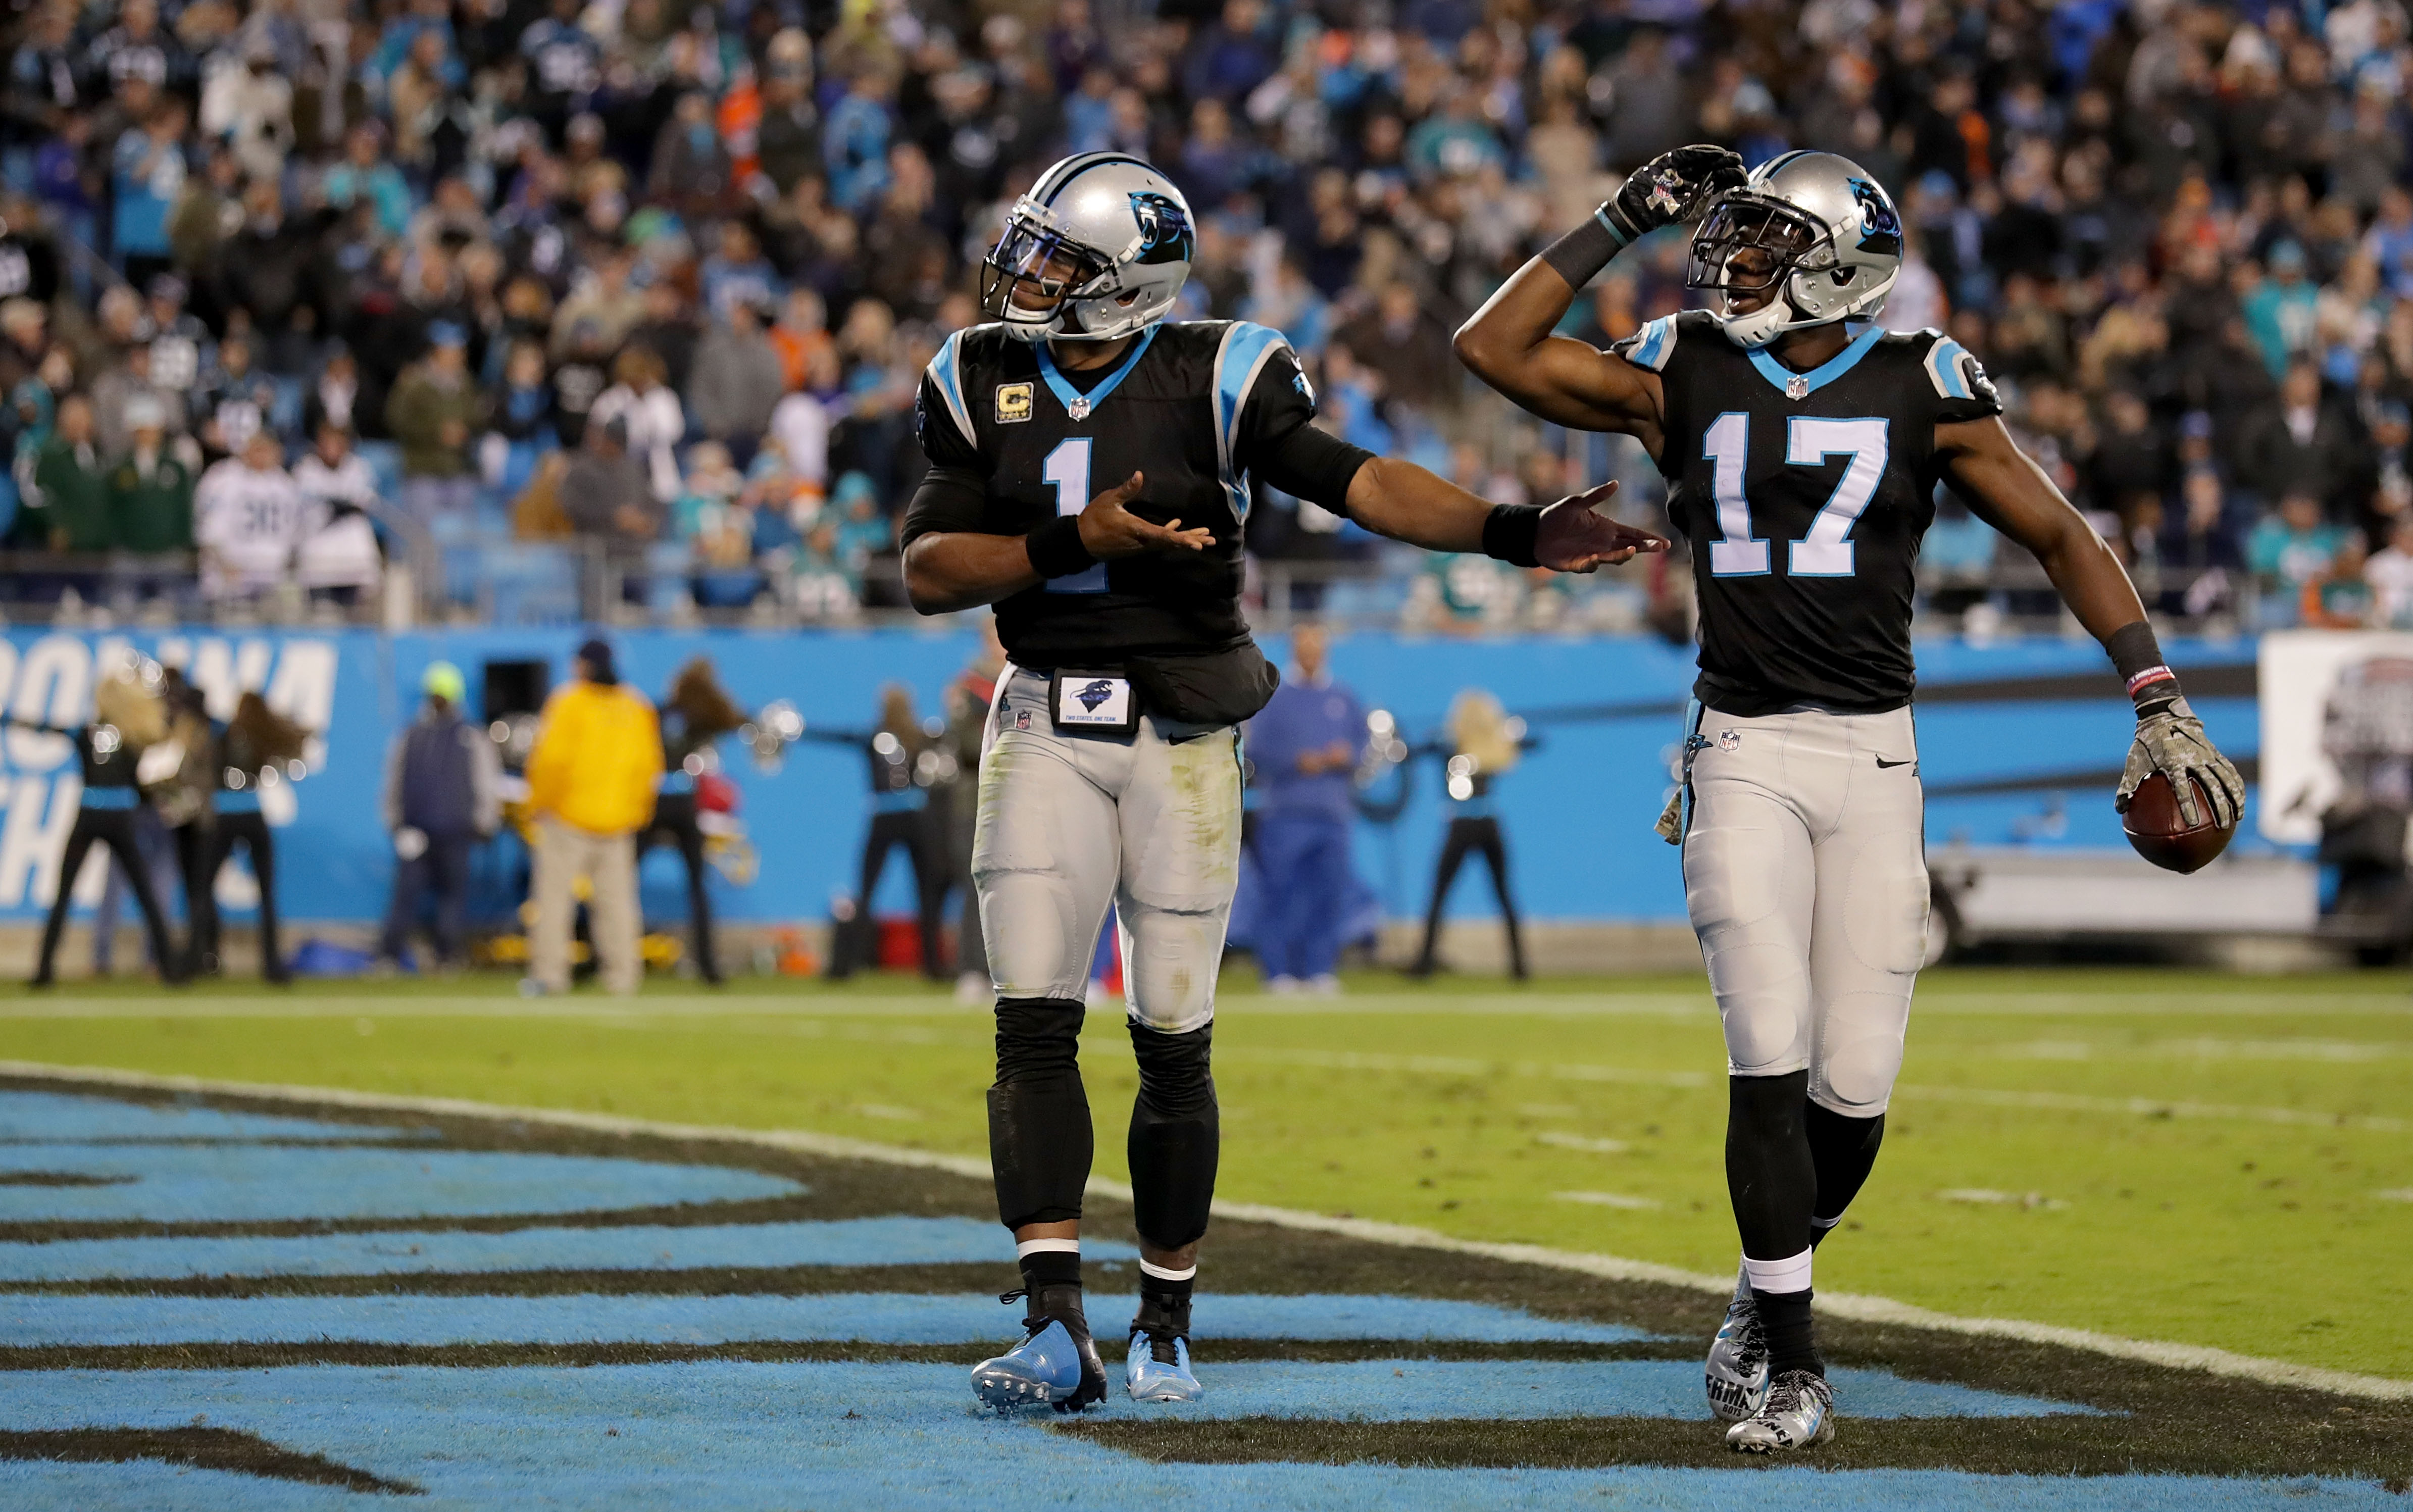 The Panthers zone-read offense dominated the Dolphins